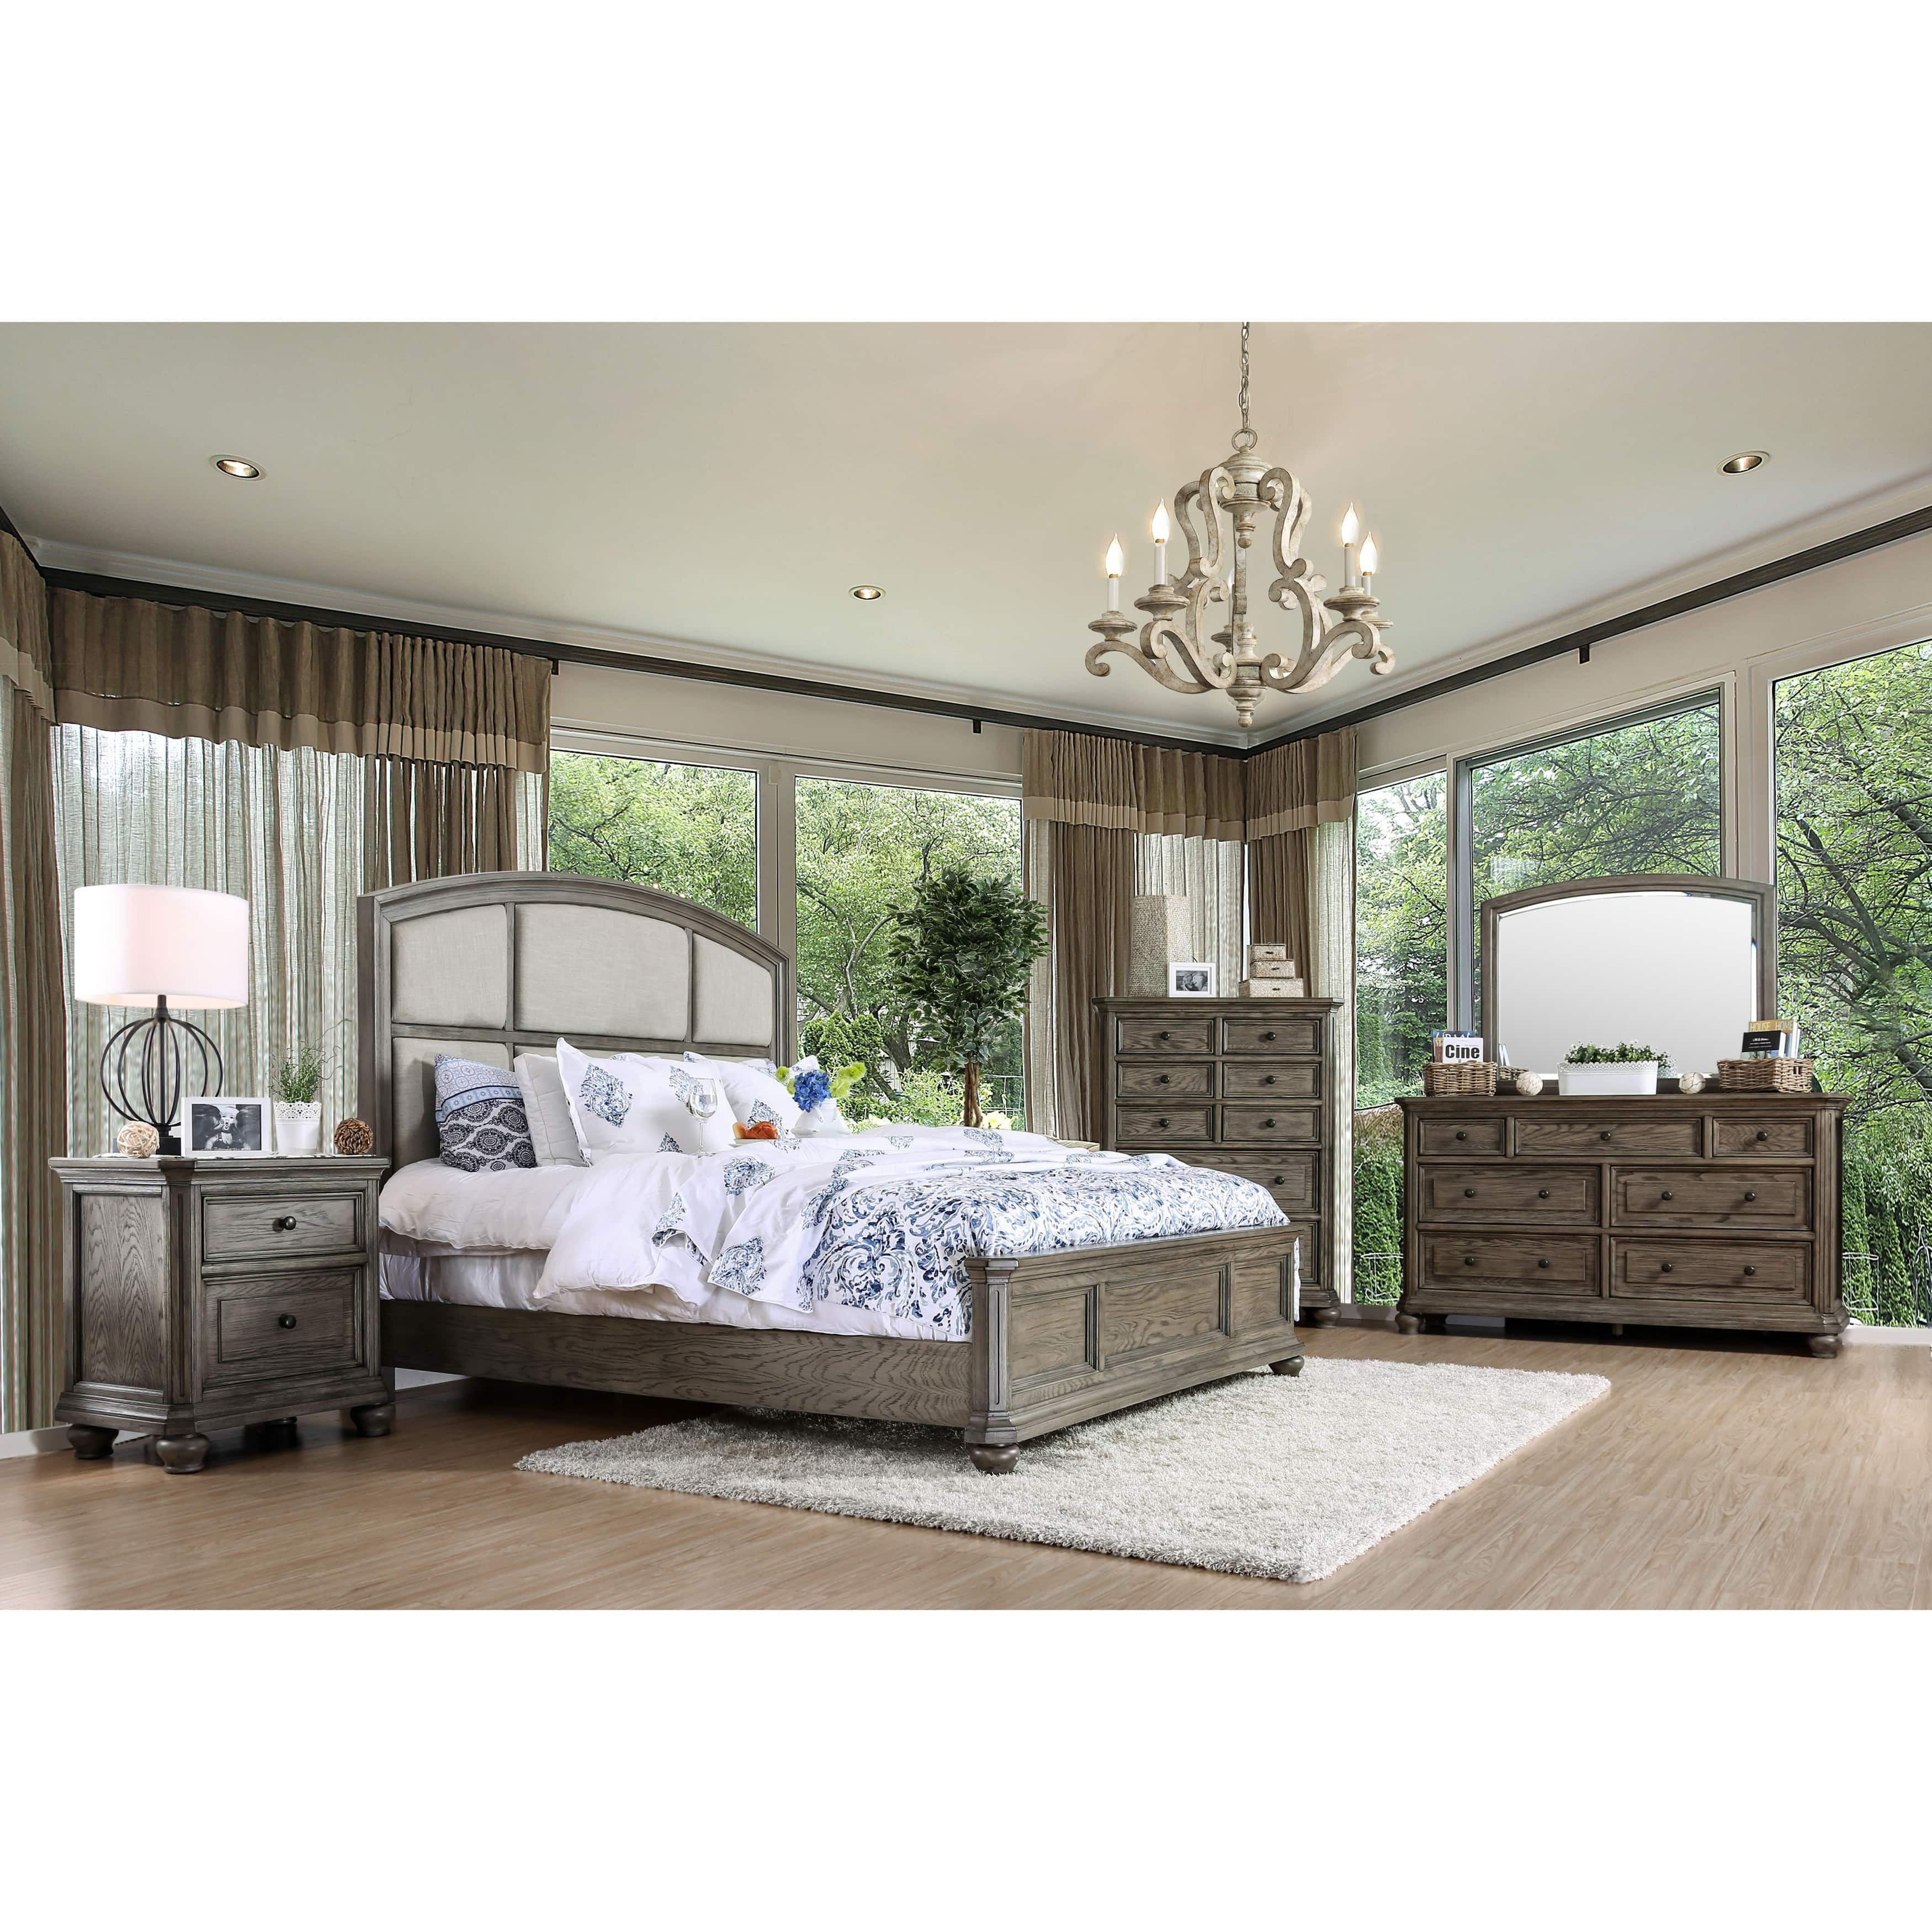 Home Furniture Bedroom Set Best Of Line Shopping Bedding Furniture Electronics Jewelry